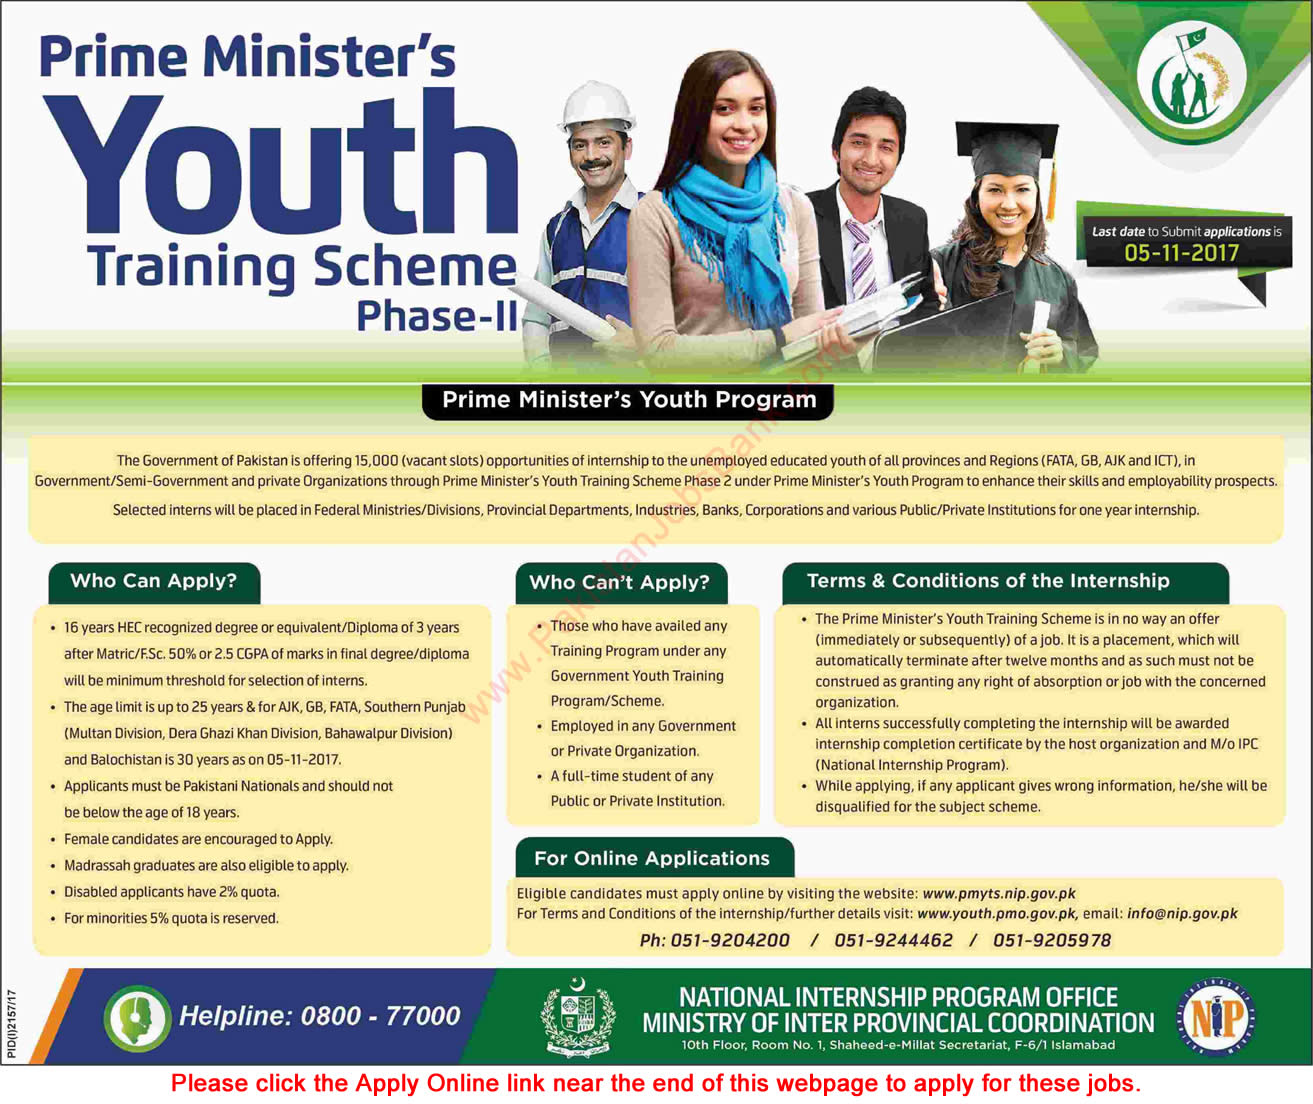 Prime Minister's Youth Training / Internship Program October 2017 Apply Online PMYTS Latest